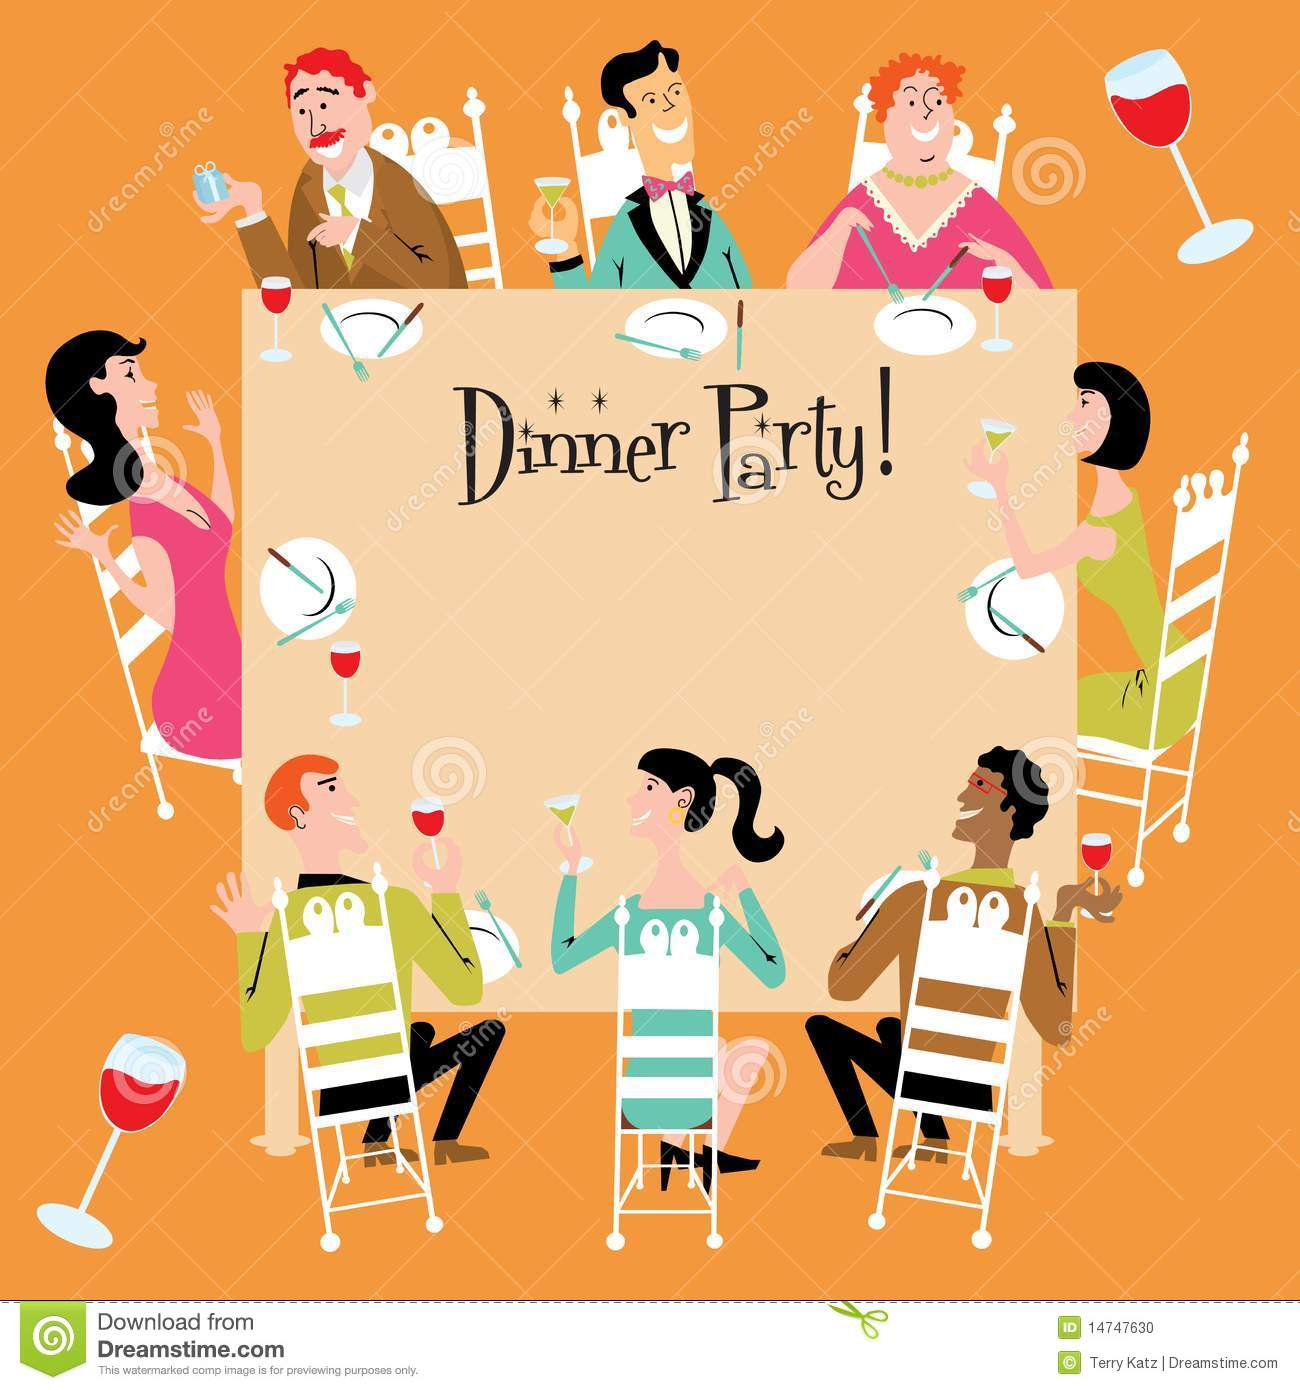 Business Dinner Party Clip Art Www.galleryhip.com The.